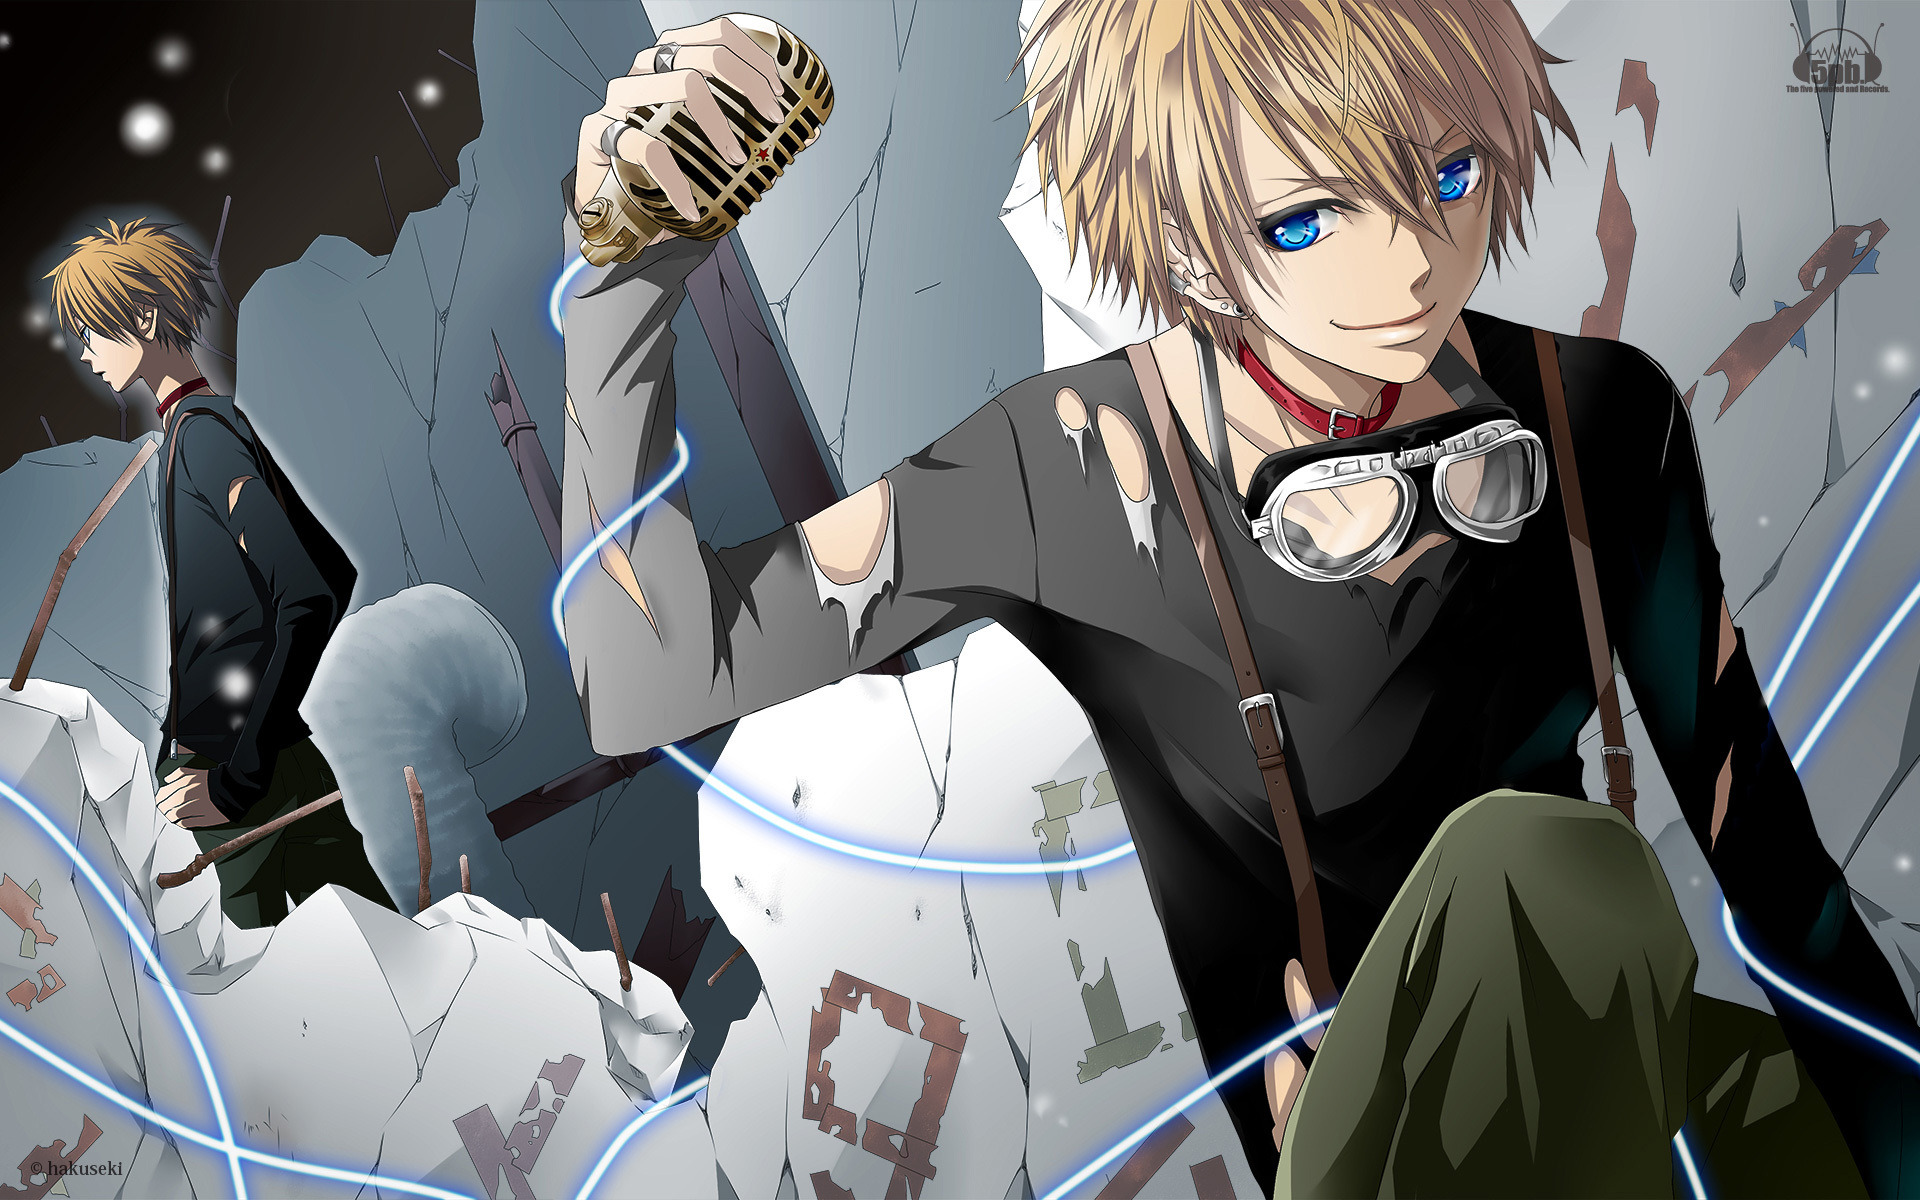 anime-wallpapers-anime-guy-wallpaper-wallpaper-37077 jpg (1920